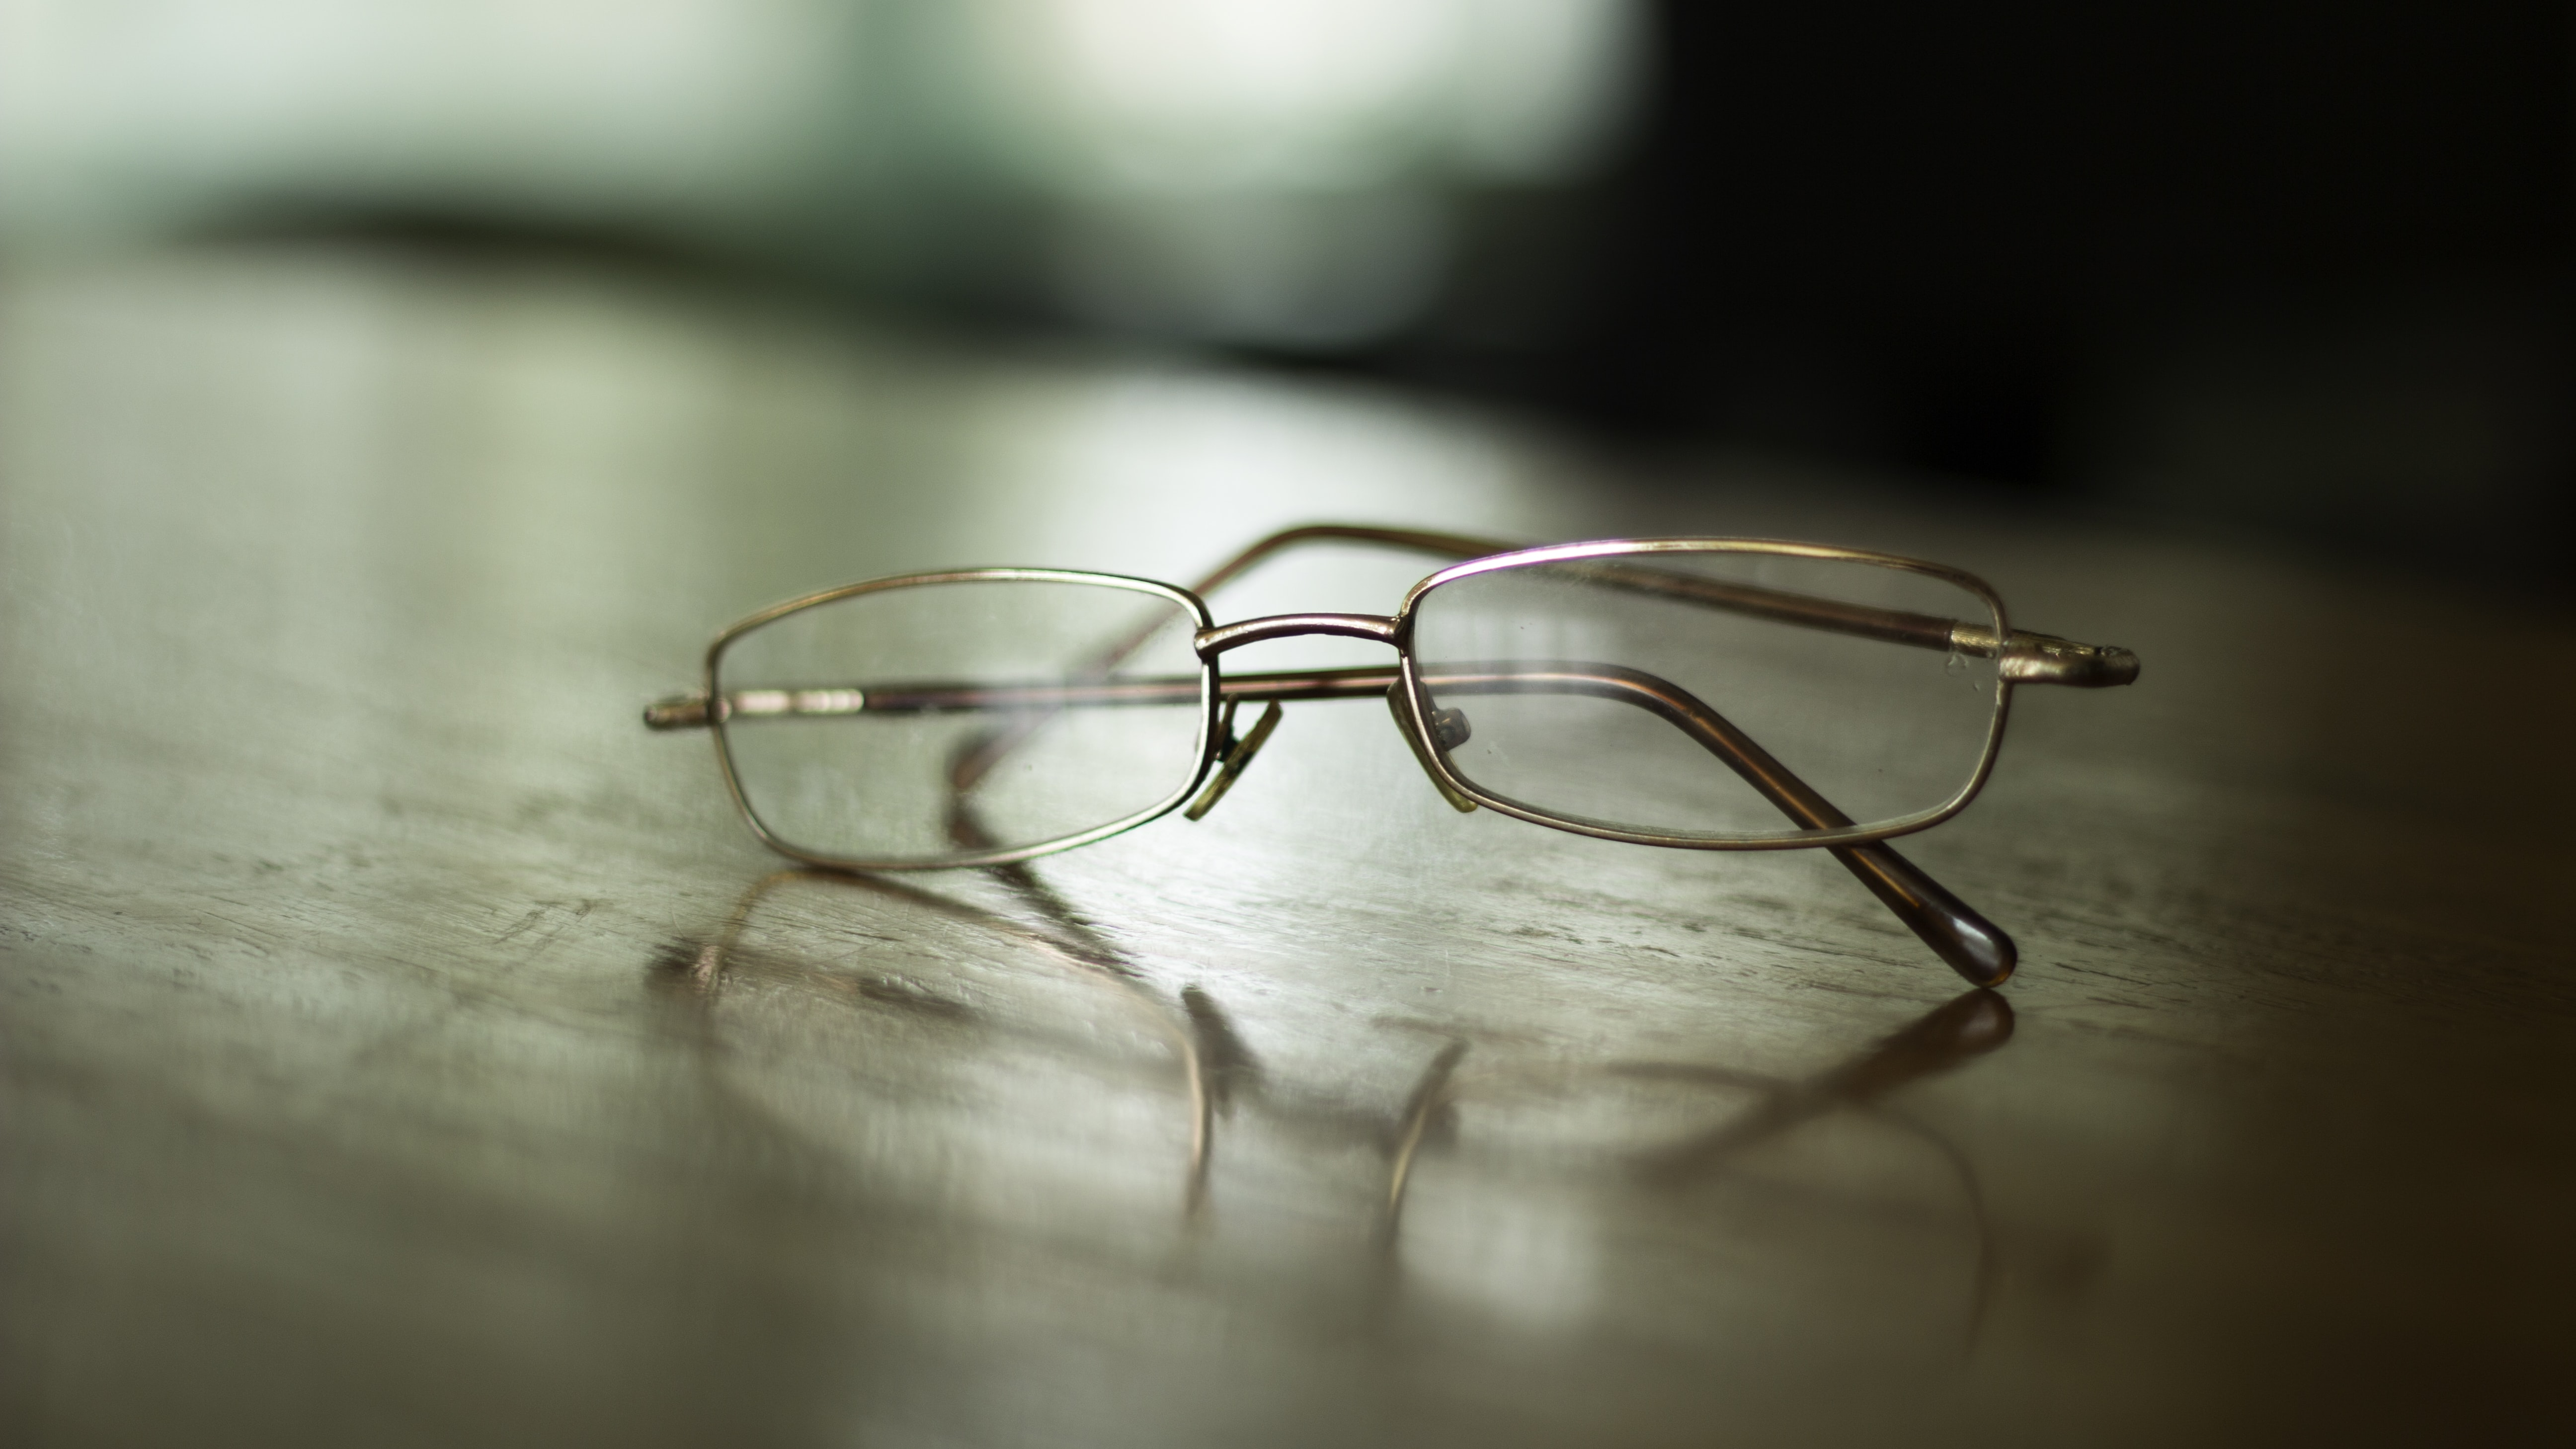 Close-up of a pair of glasses on a wooden surface